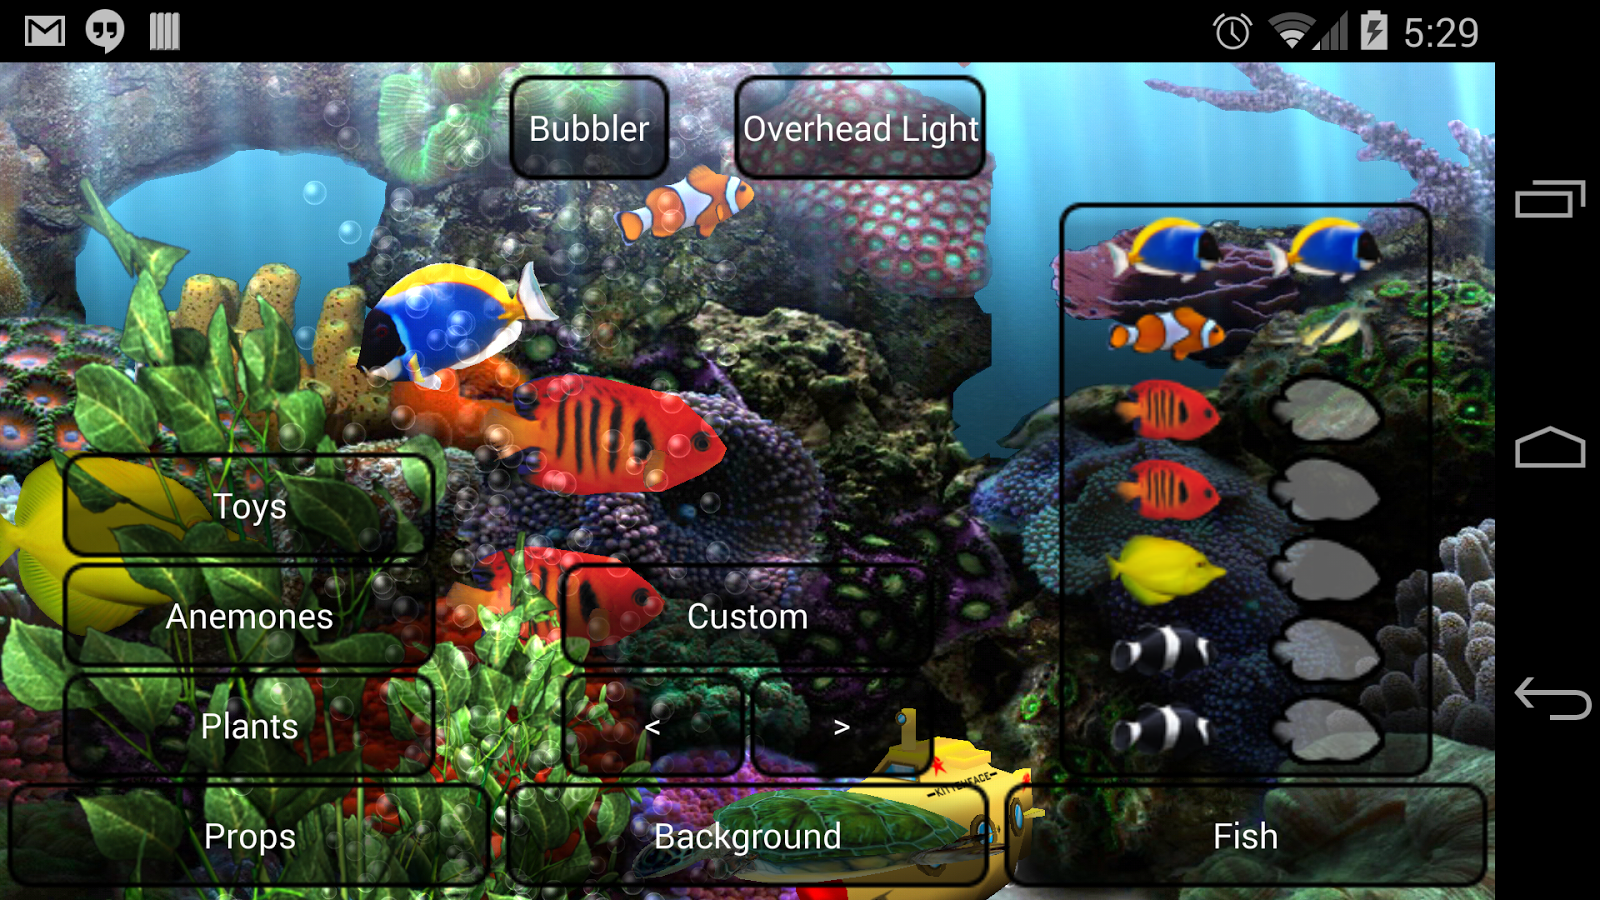 Aquarium Live Wallpaper   Android Apps on Google Play 1600x900